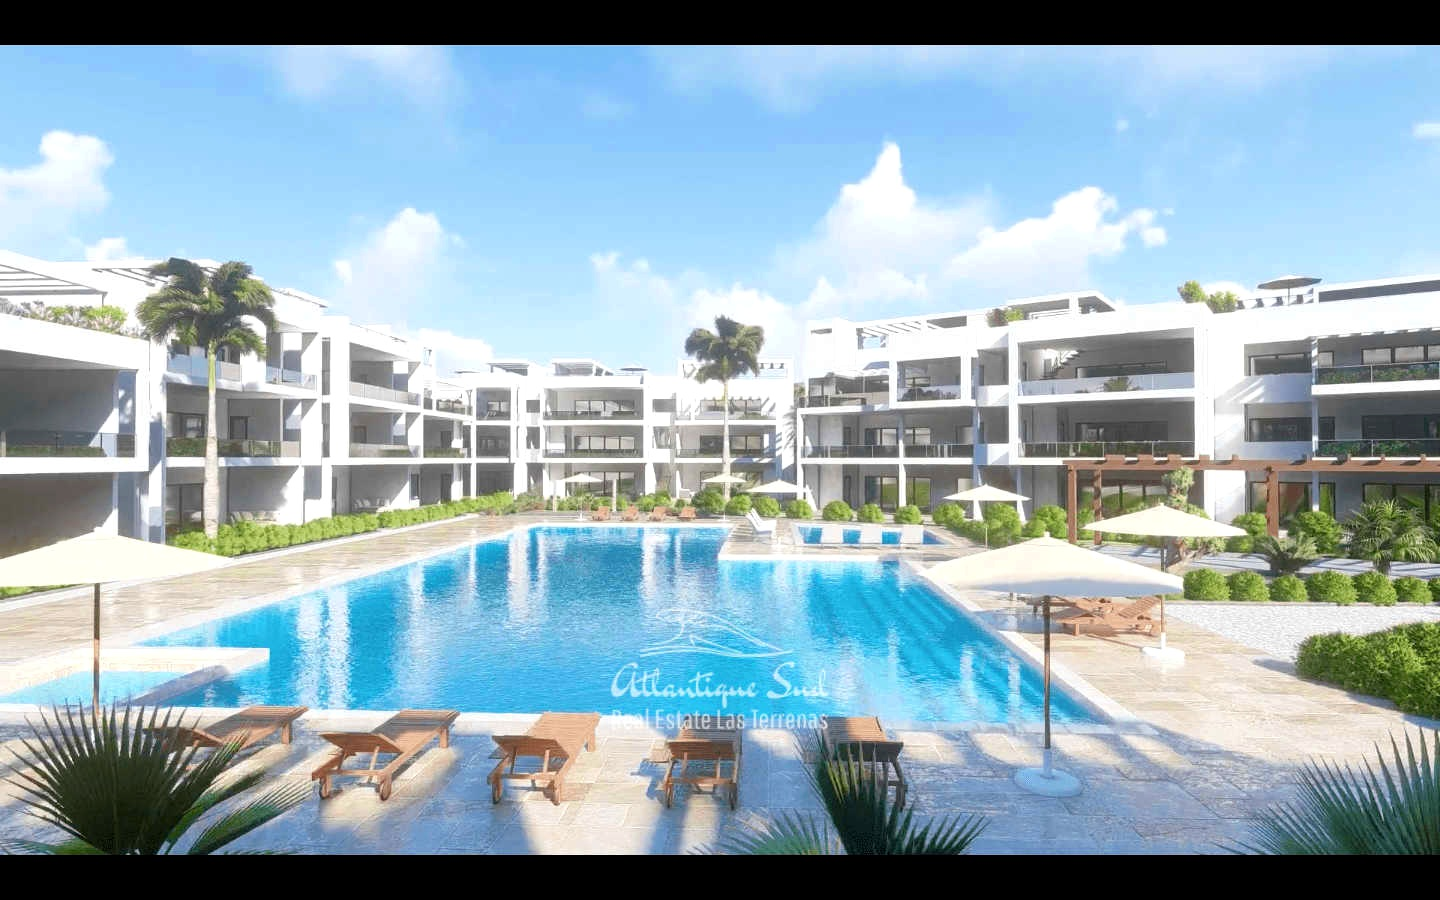 Condos for sale in Las Terrenas Dominican Republic 4.jpg